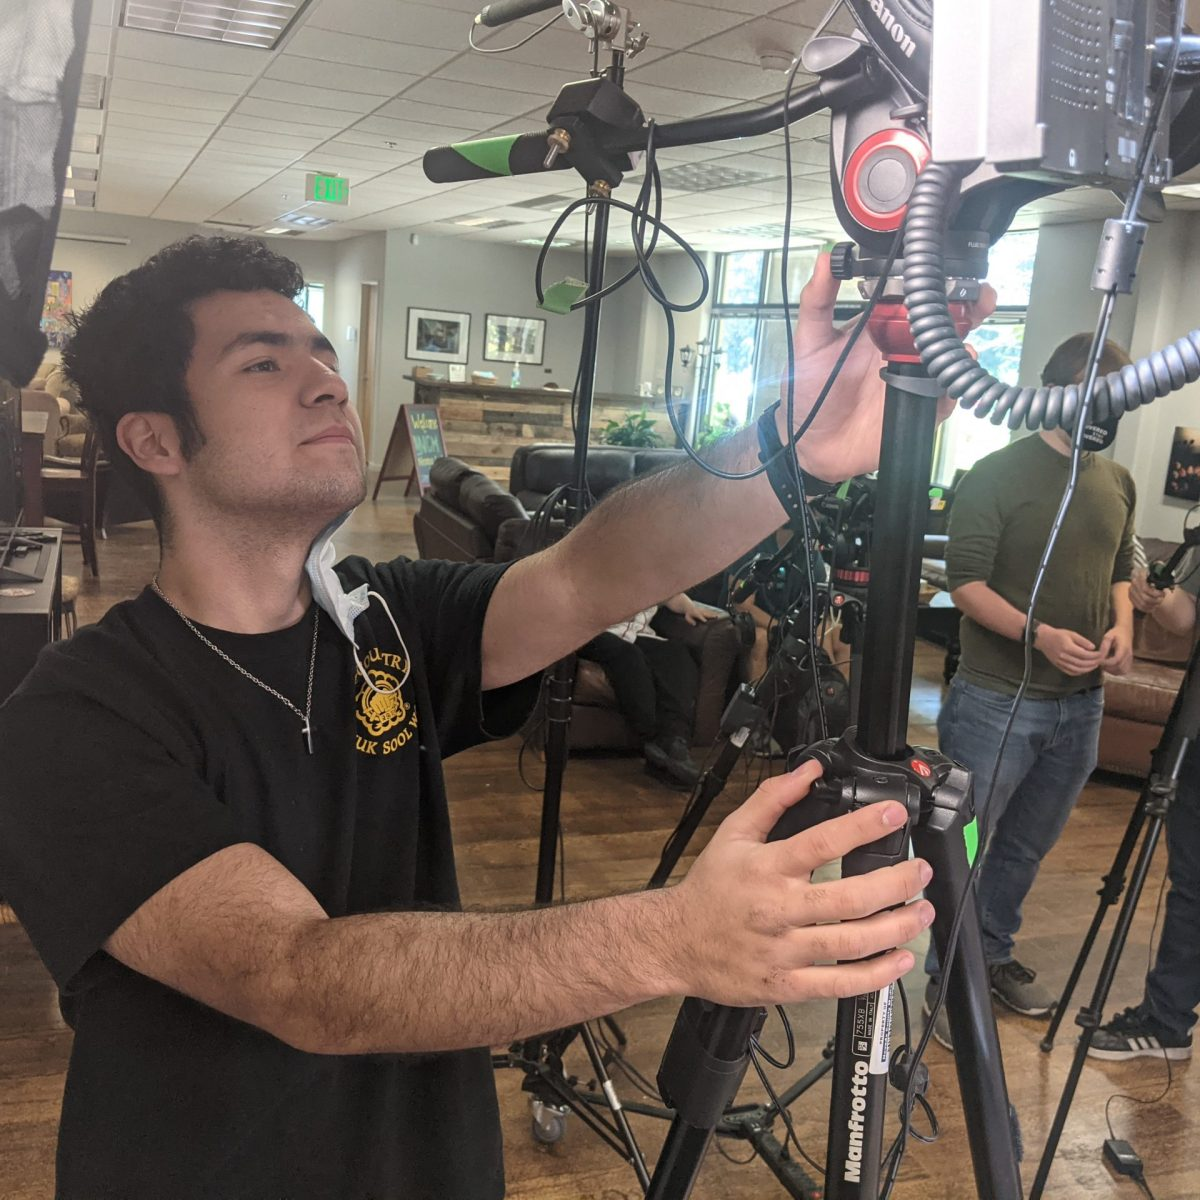 """Nevada County Media intern Xavier Barnhart adjusts a video camera during the recent filming of the monthly local show, """"Let's Get Cooking,"""" at NCM's new studios in the Whispering Pines industrial park in Grass Valley. Also in the studio are Production Manager Andrew Rolland, center, and intern Tal Vinizky, right."""